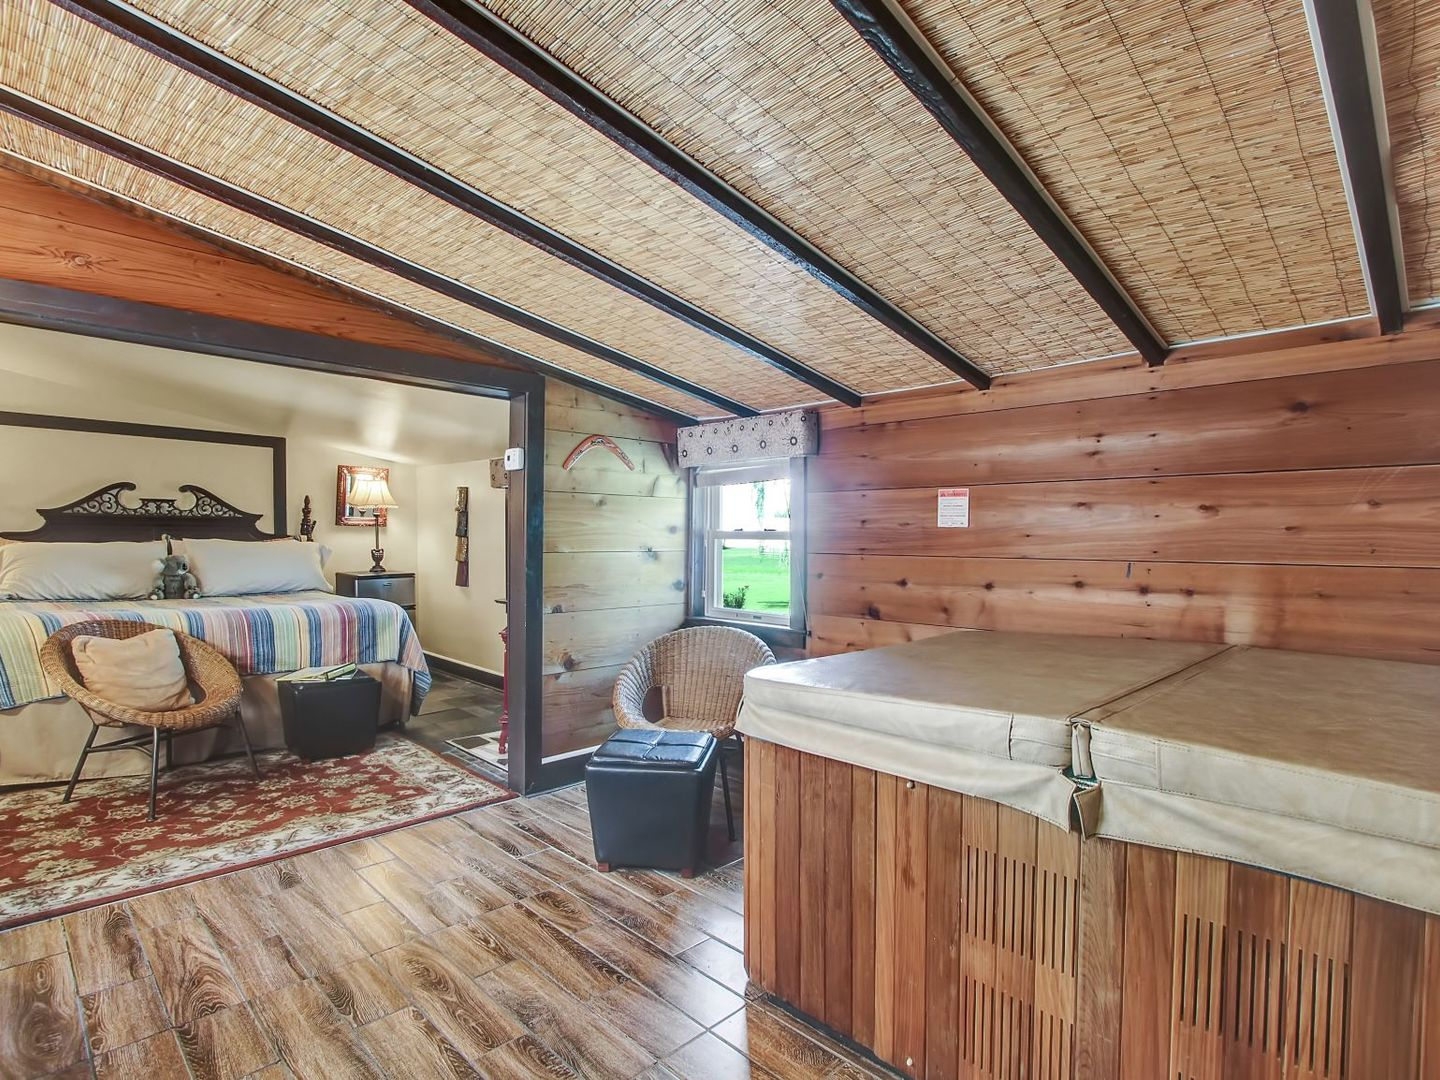 A building with a wooden floor at Australian Walkabout Inn Bed & Breakfast.